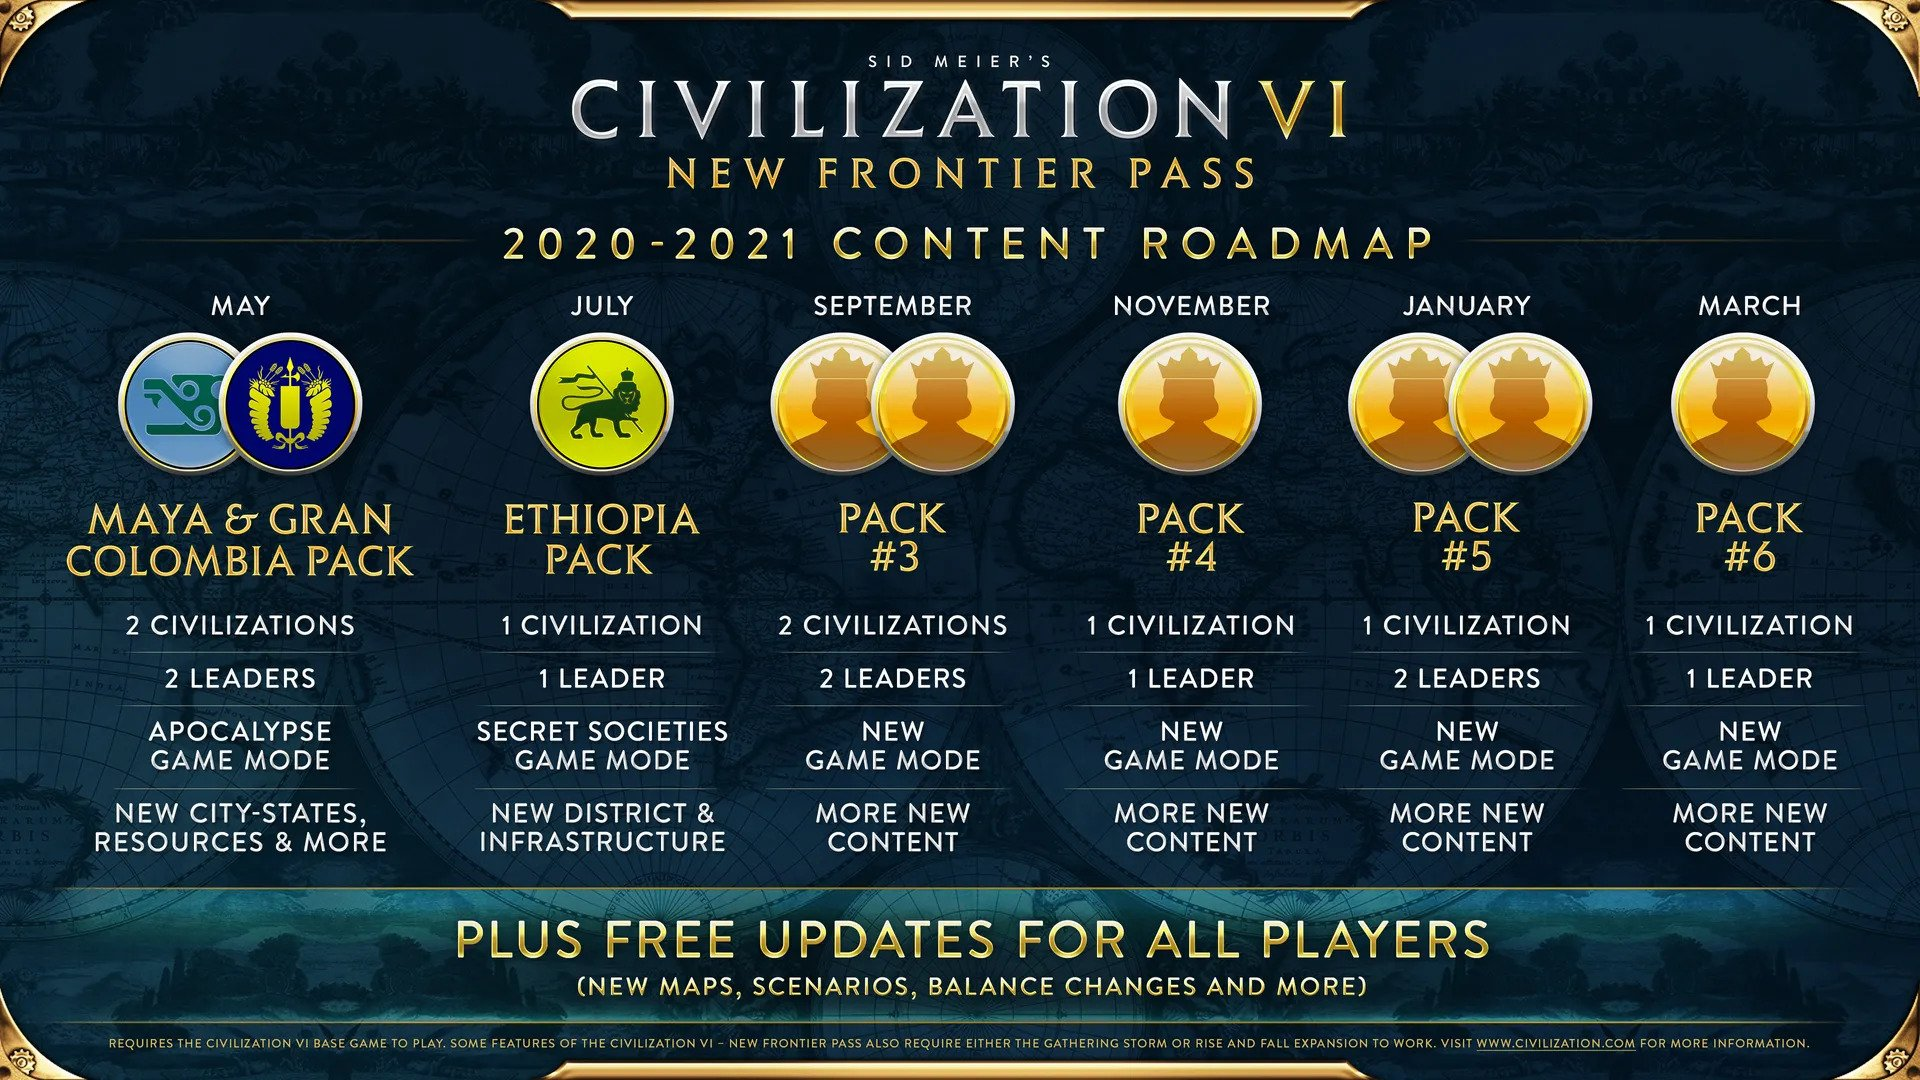 Civilization VI - Content Roadmap